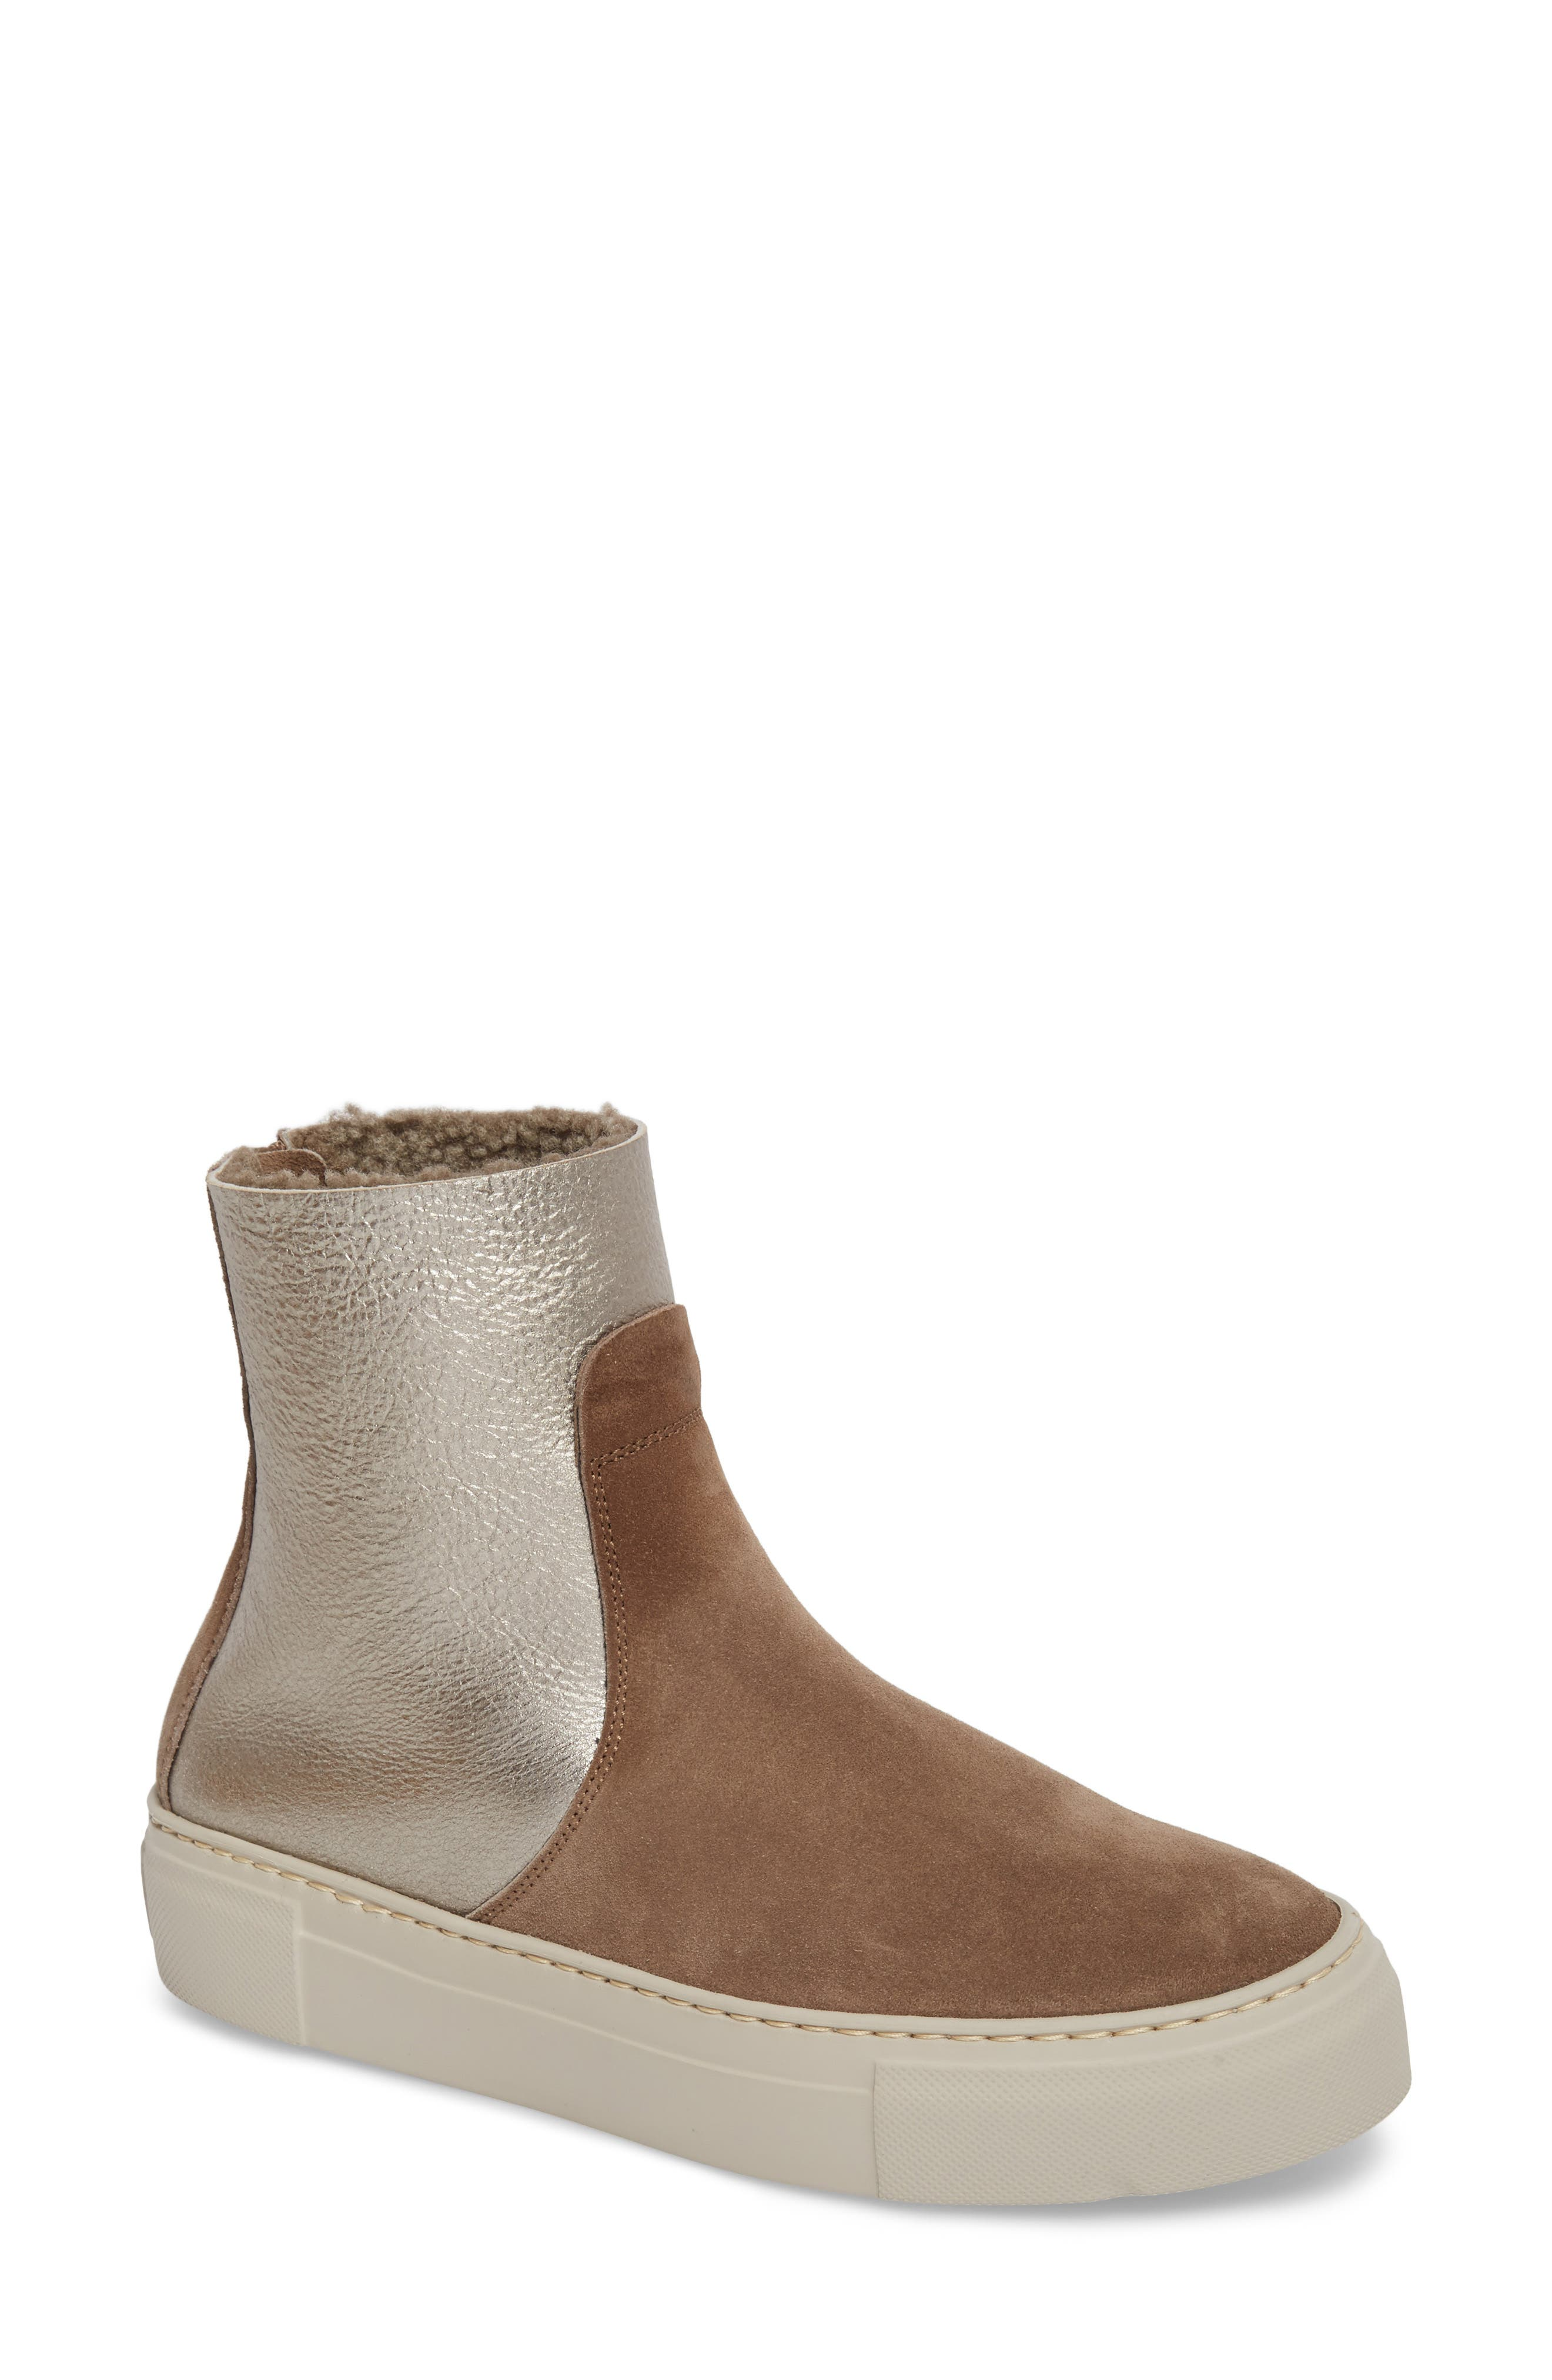 Sport Genuine Shearling Lined Bootie,                             Main thumbnail 1, color,                             255